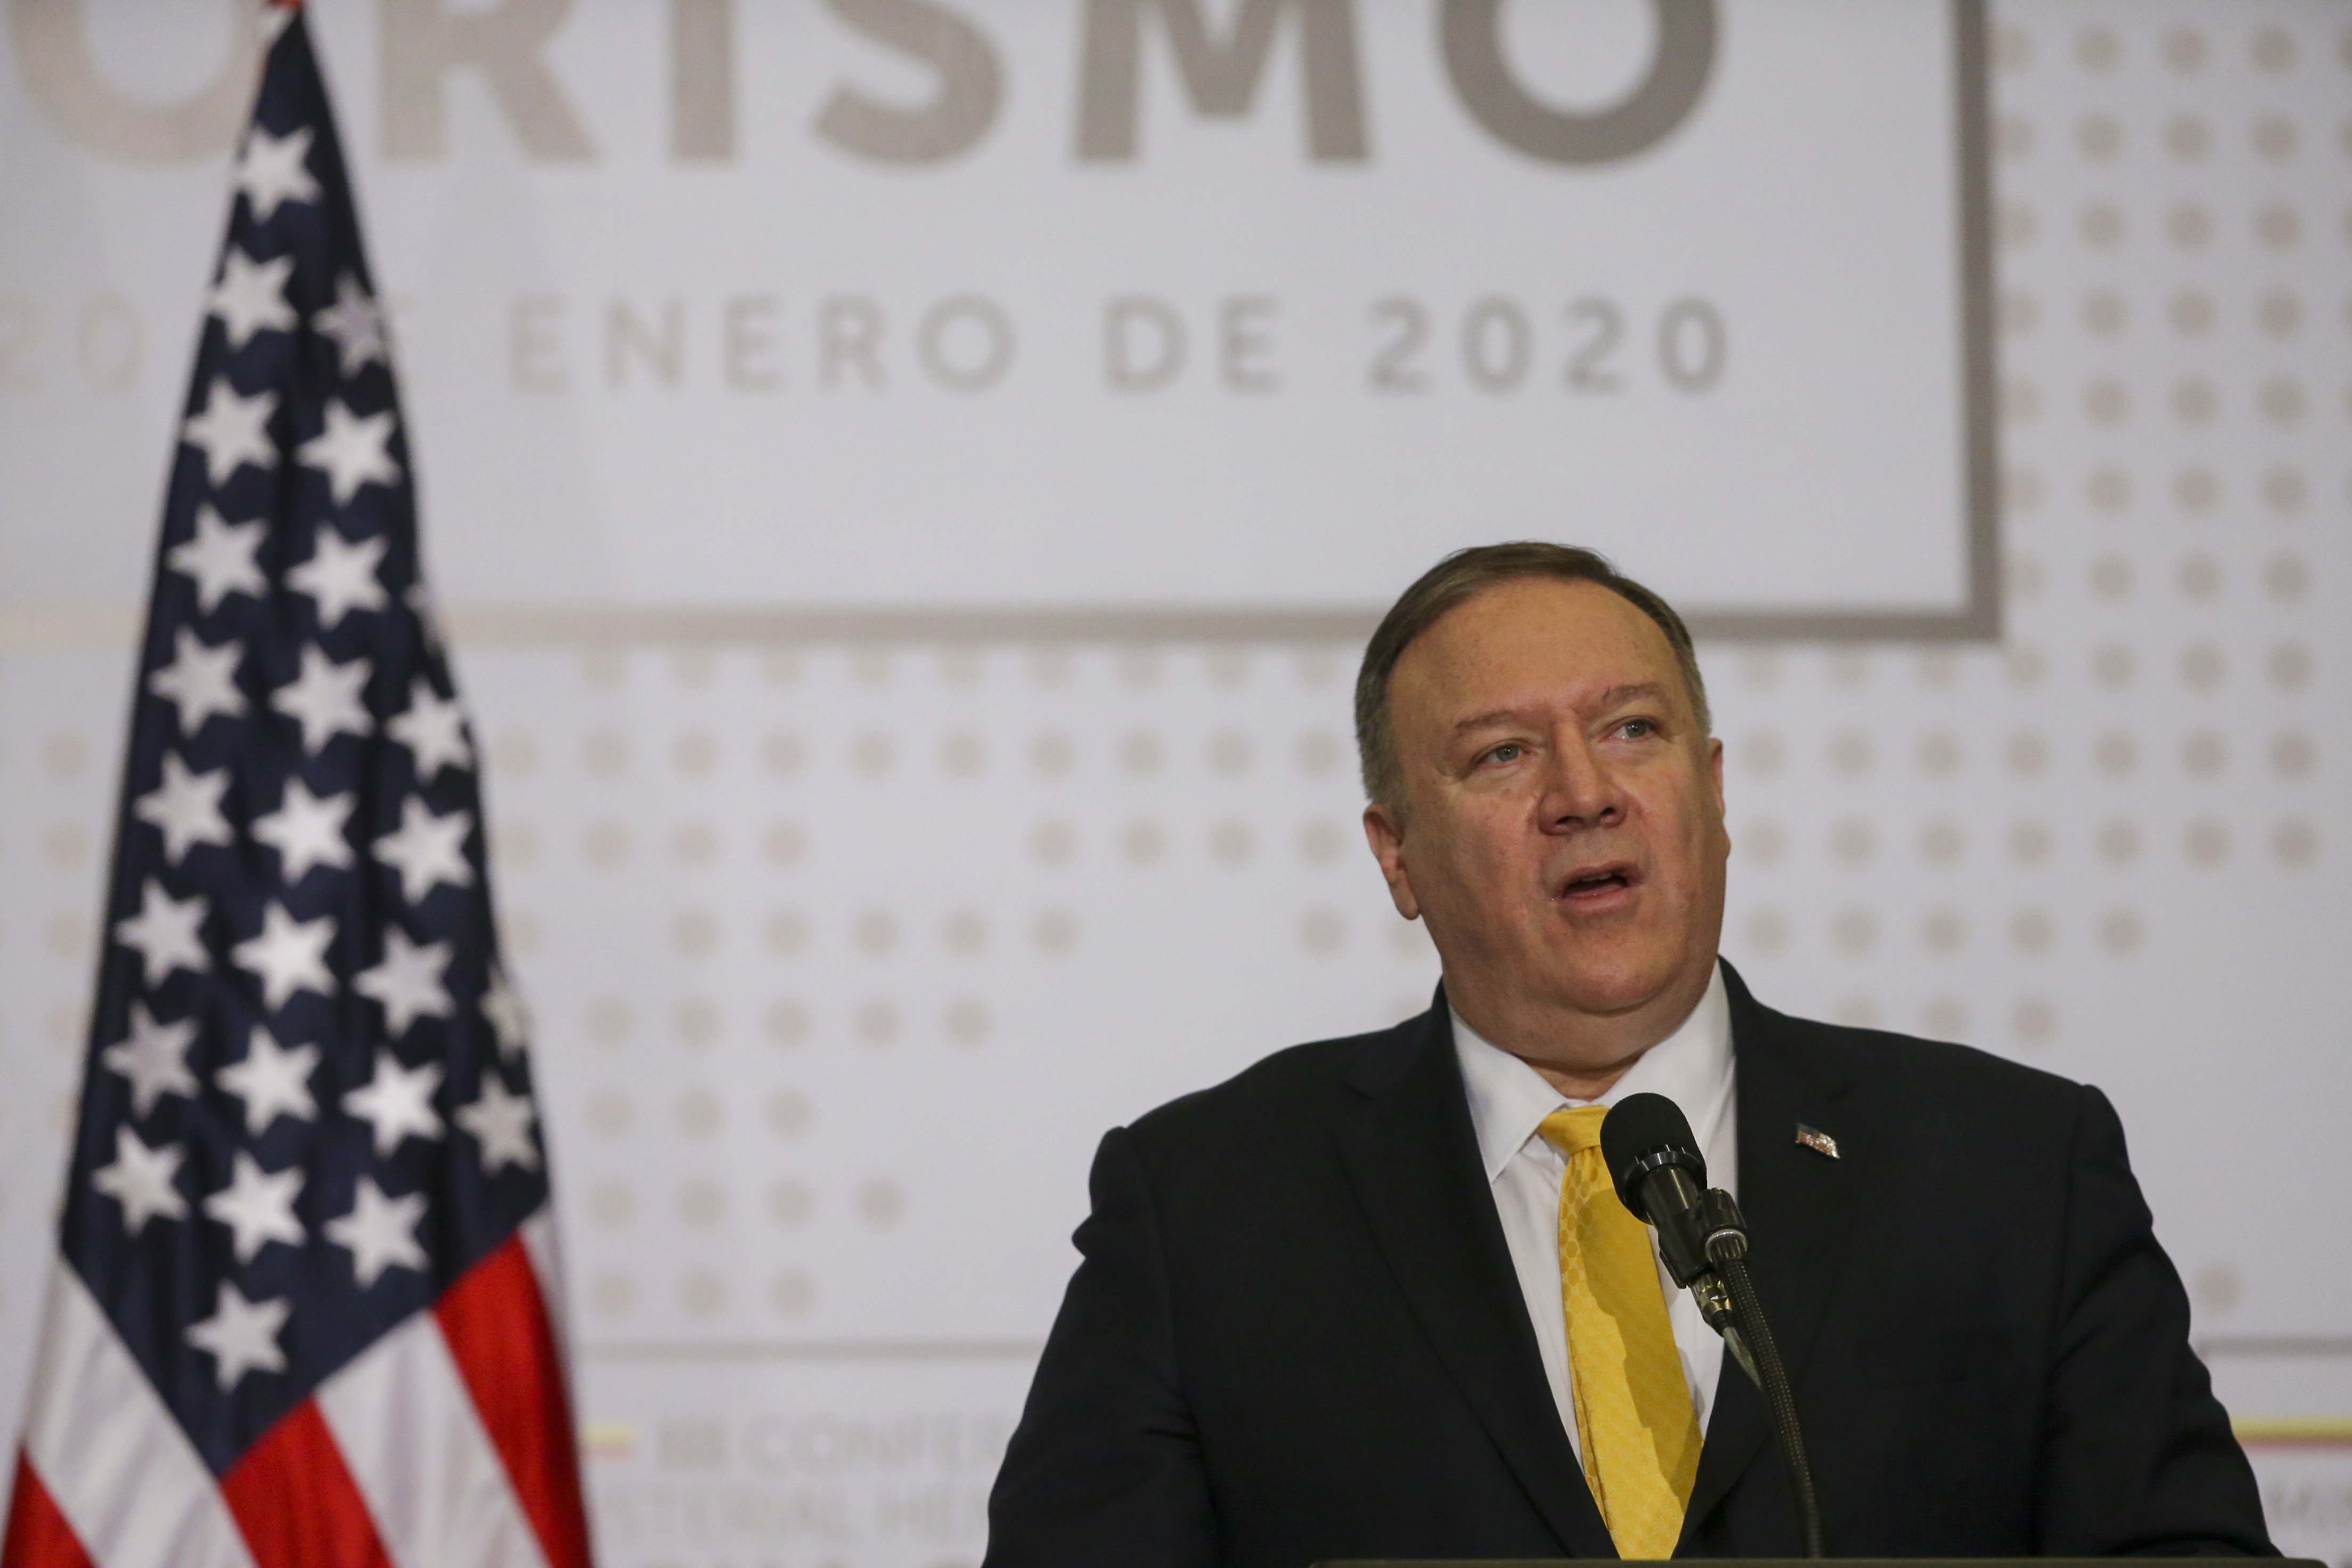 Pompeo defends himself against NPR reporter's claim he shouted at her